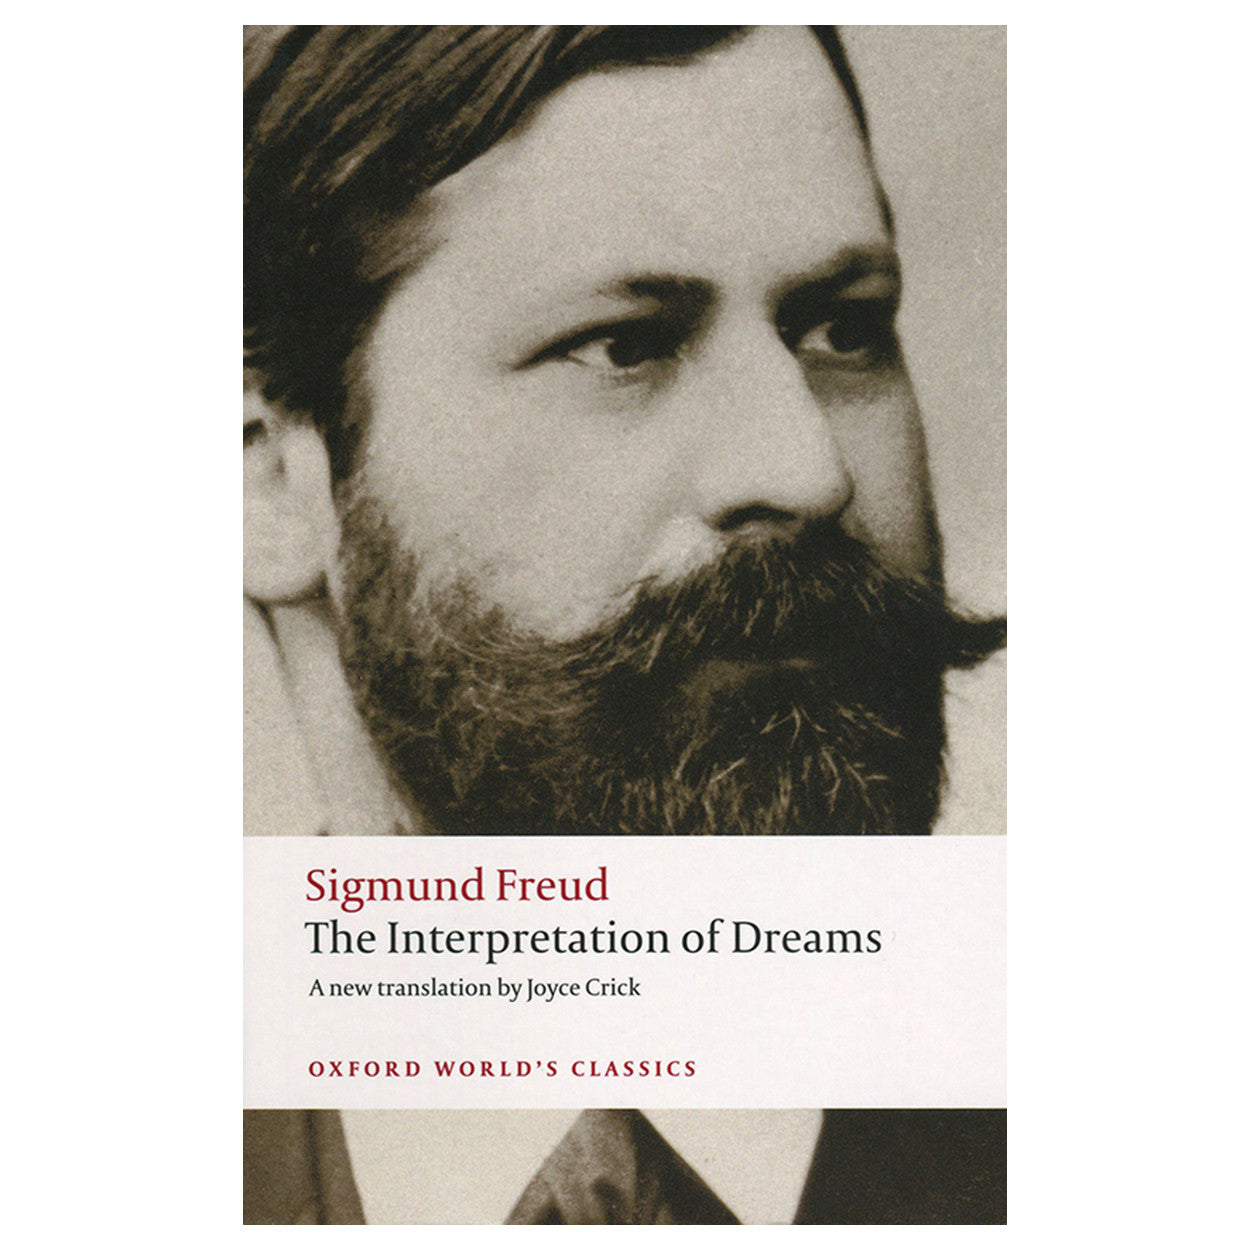 a description of the interpretation of dreams by freud Freud's interpretation of dreams sigmund freud was born on the sixth of may in eighteen fifty-six in the town of freiberg, of the czech republic .